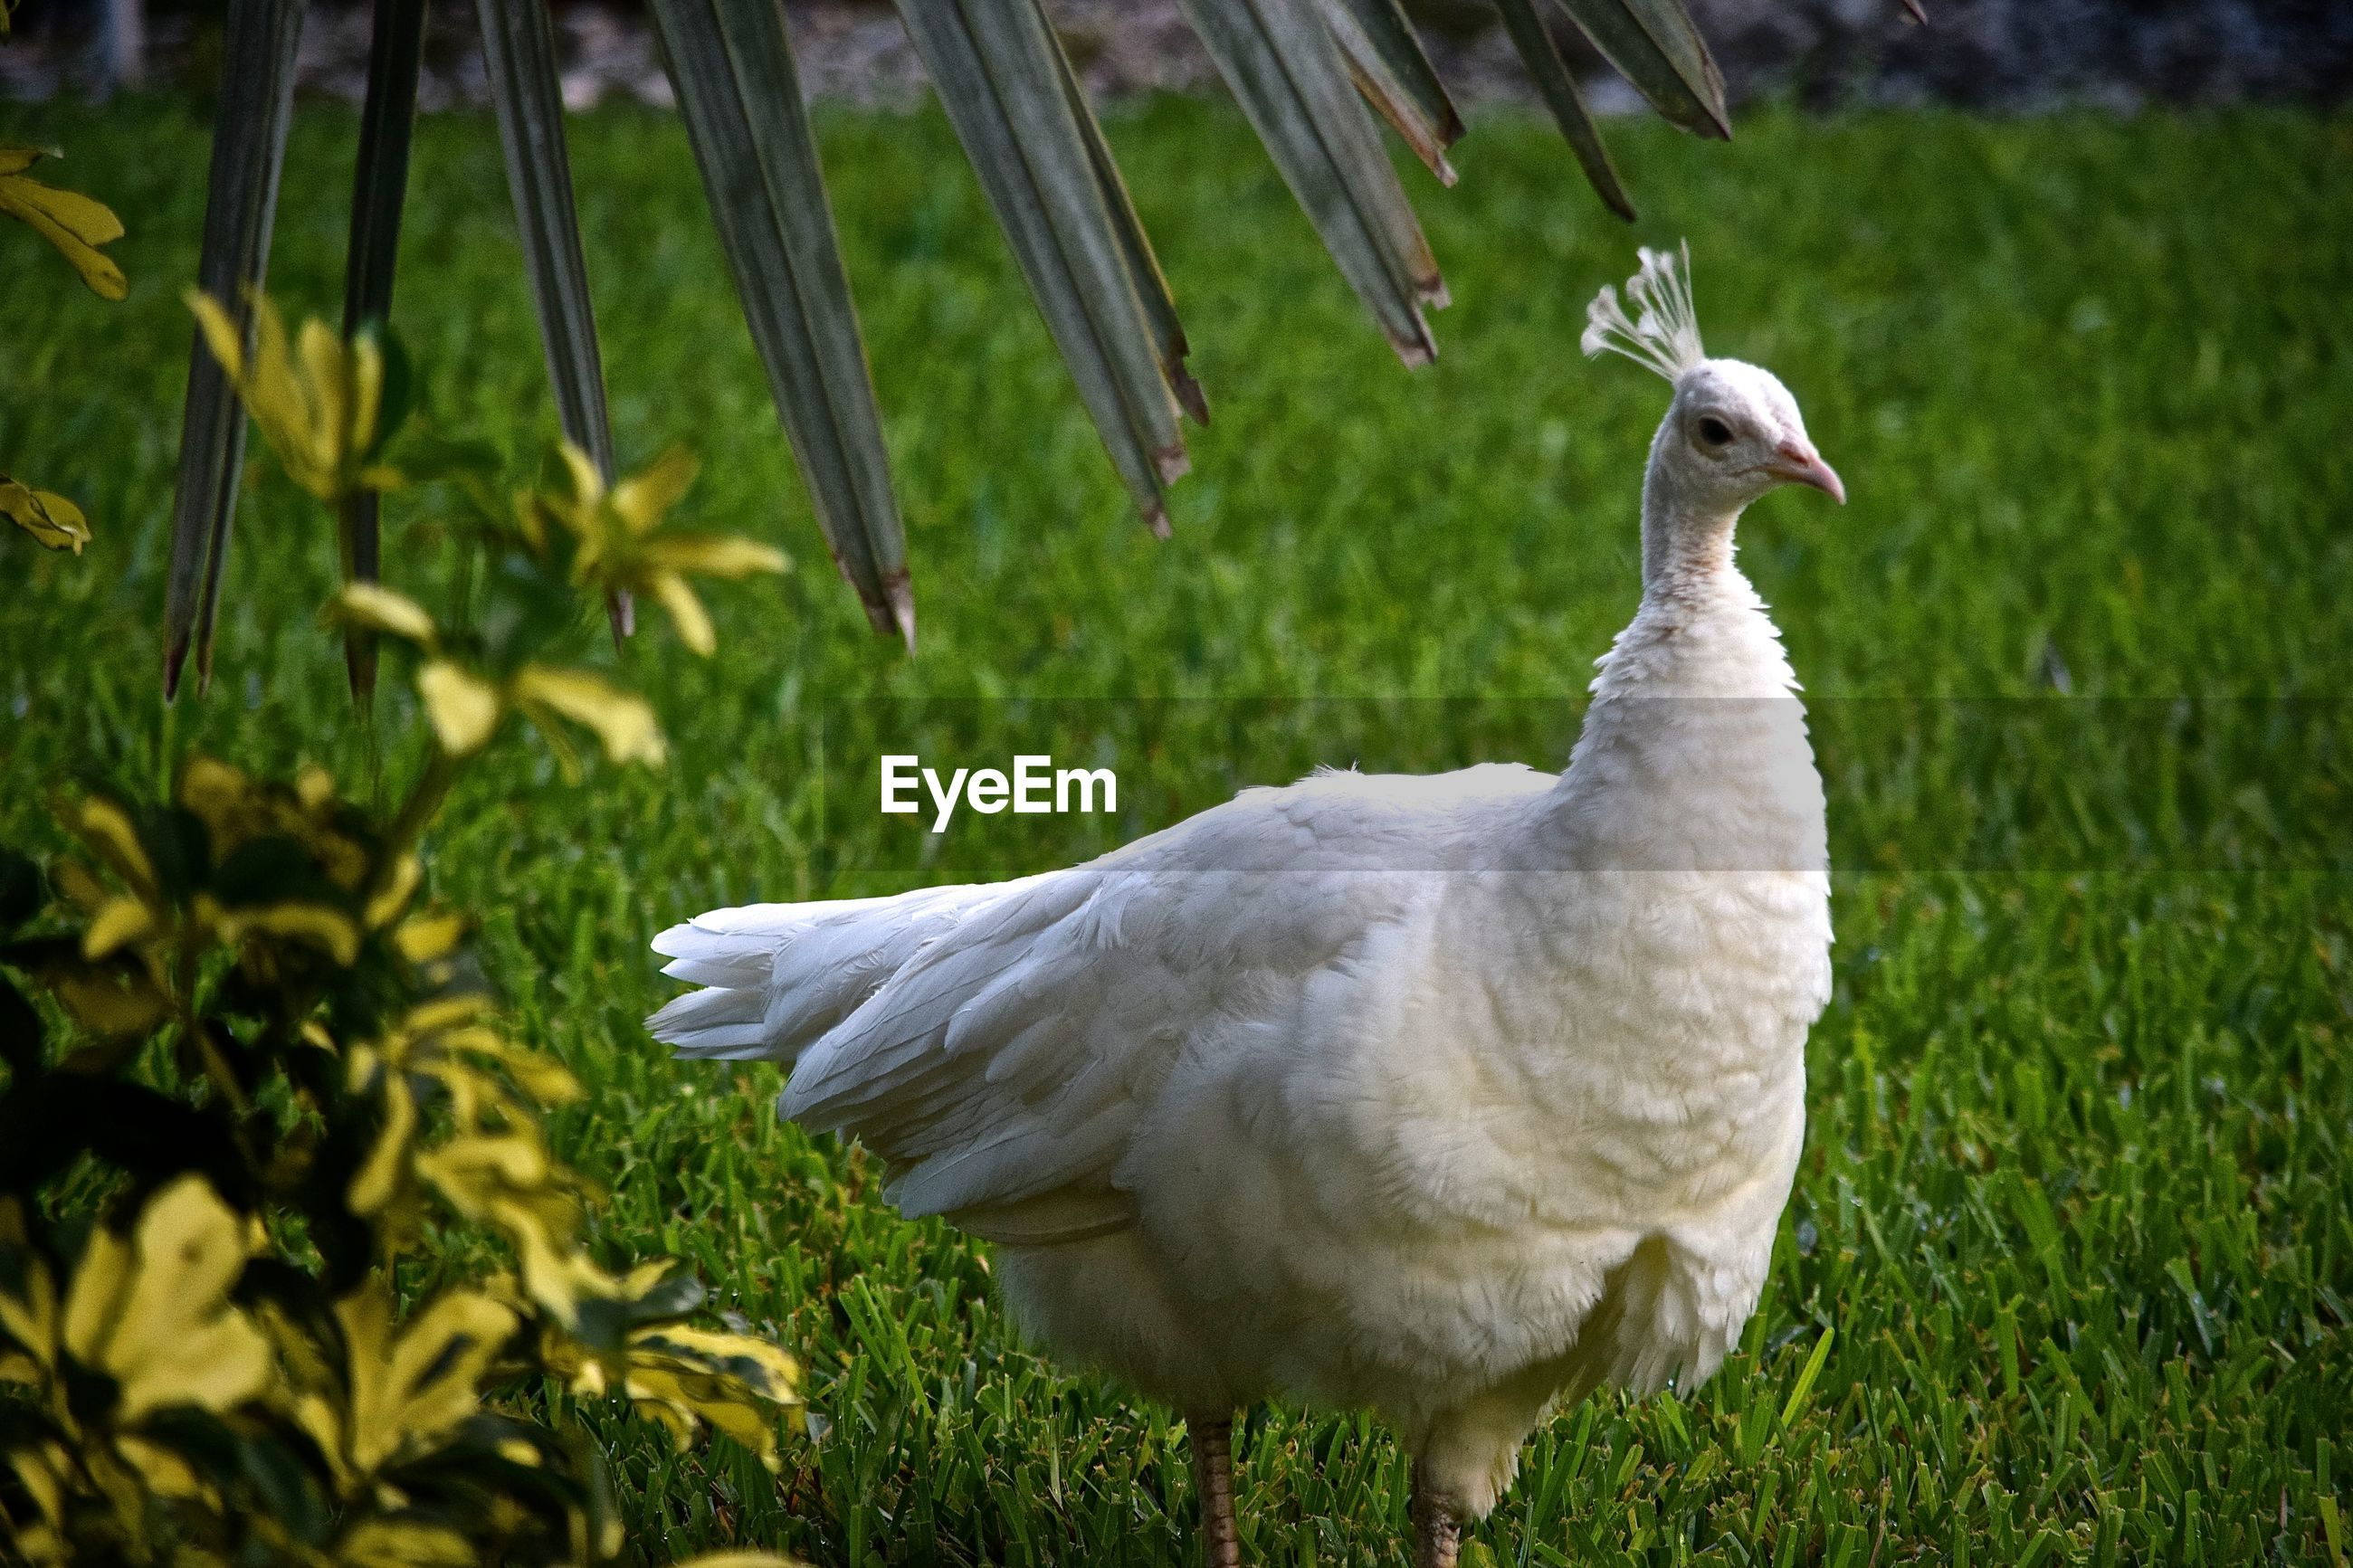 Side view of white peacock walking on grass